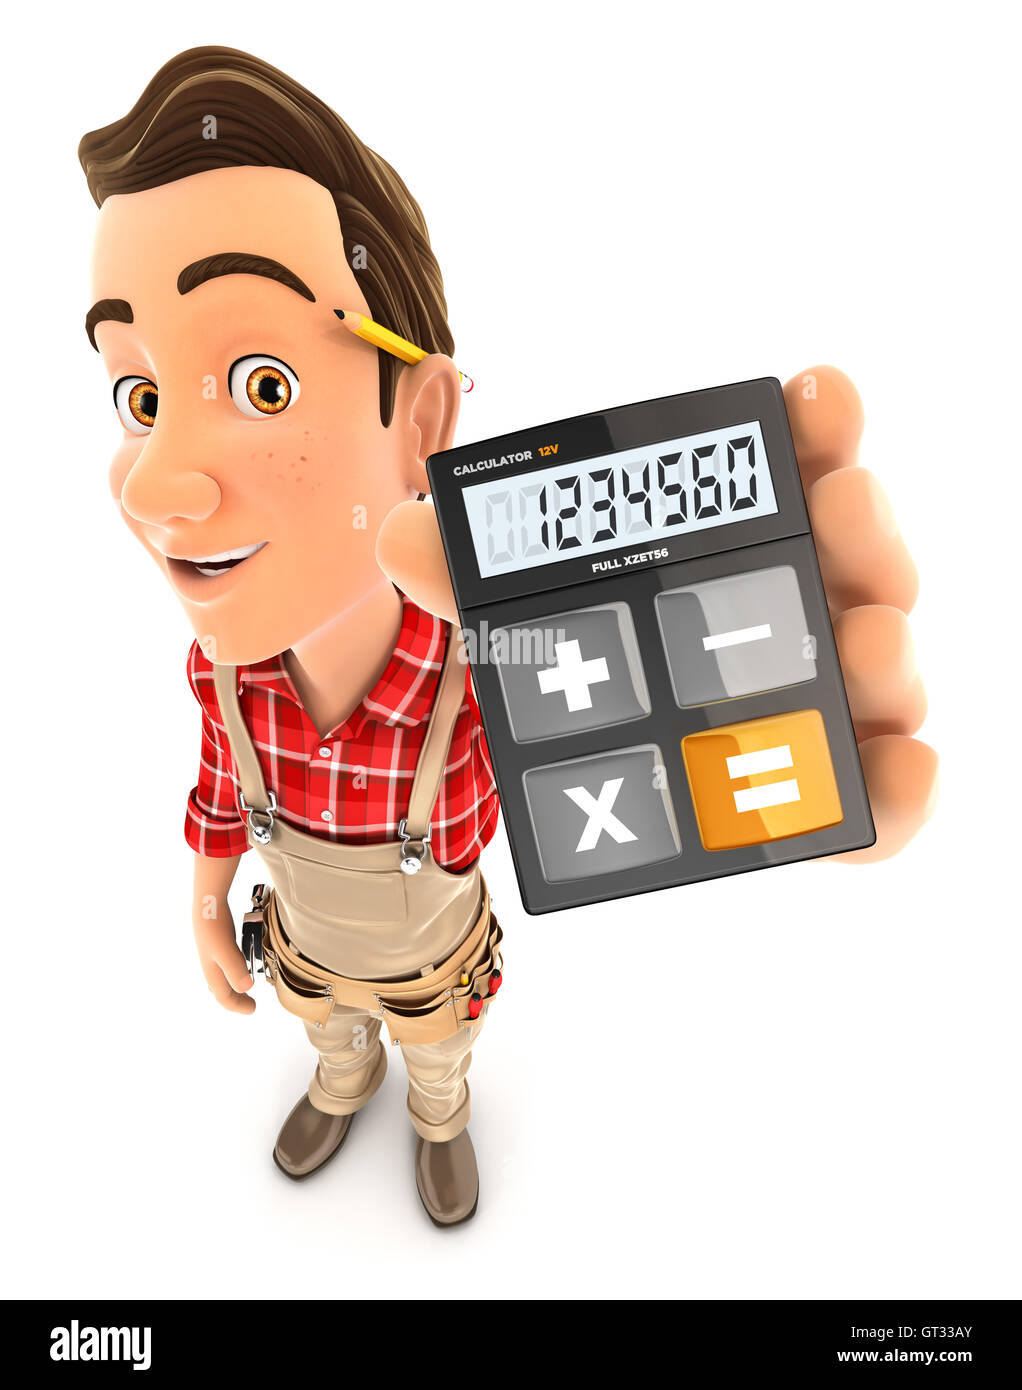 3d handyman holding calculator, illustration with isolated white background - Stock Image